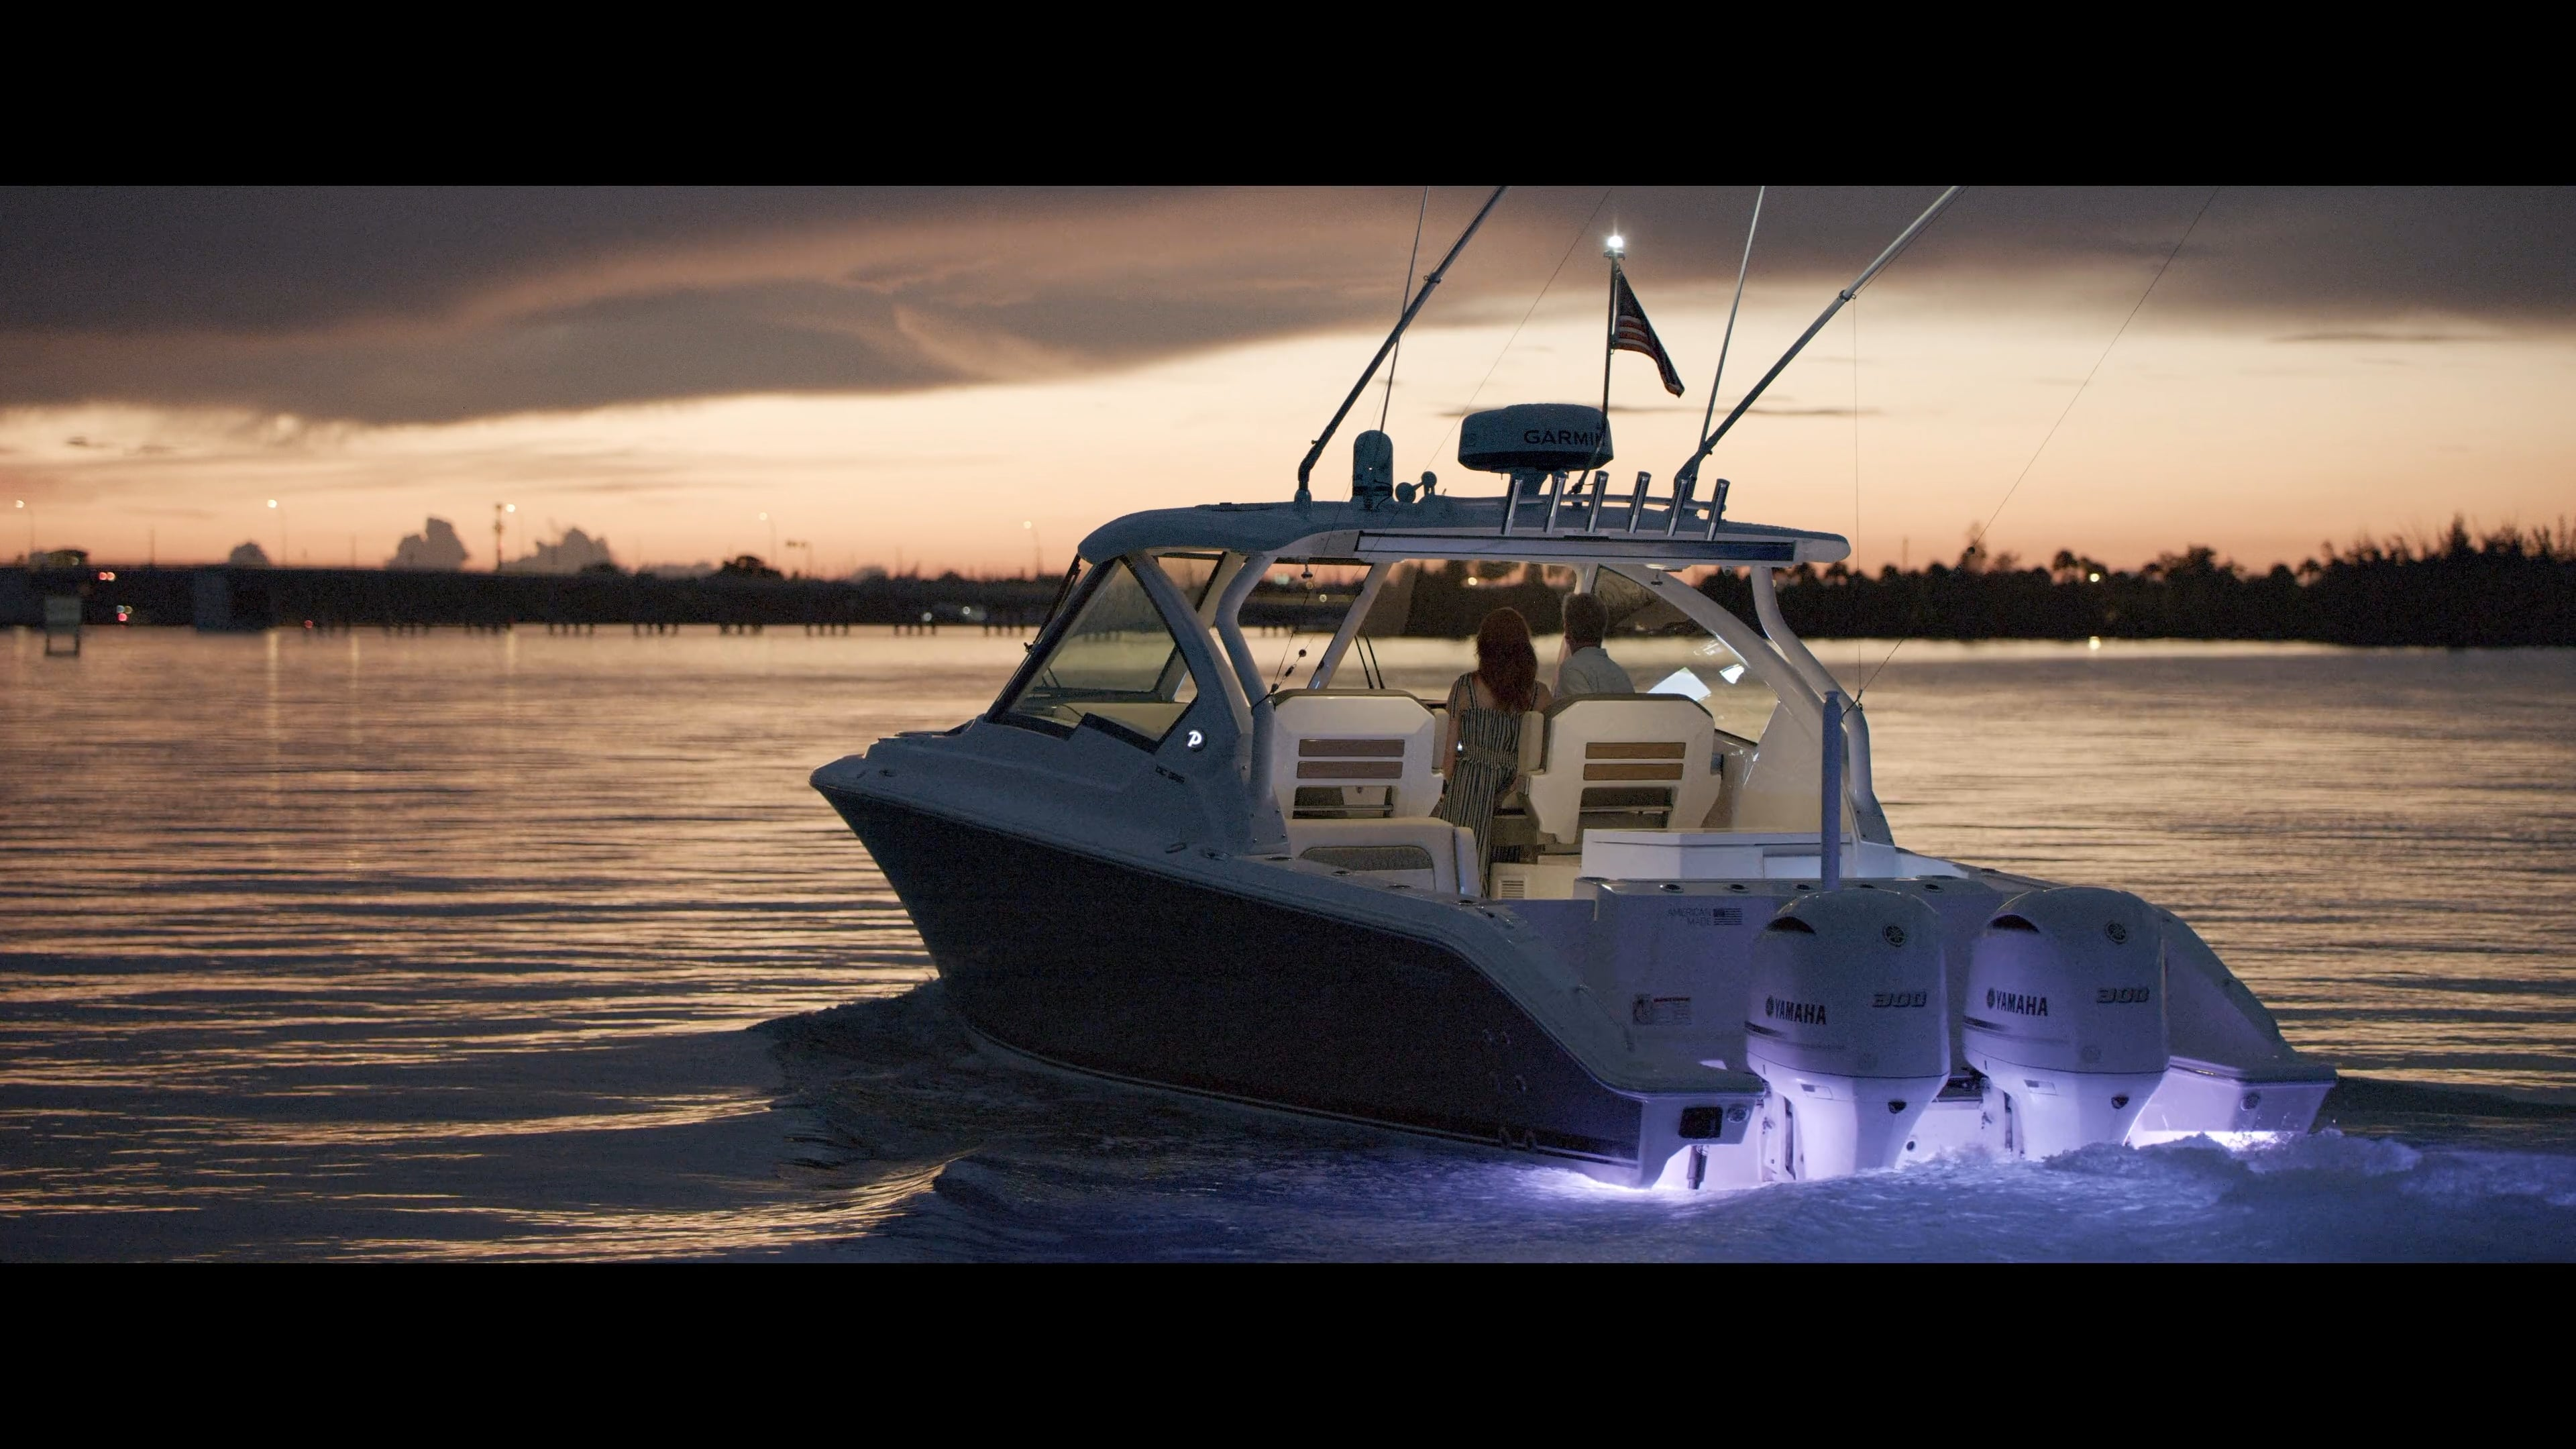 Pure. Pursuit. The Boat of Your Dreams. Watch video now.